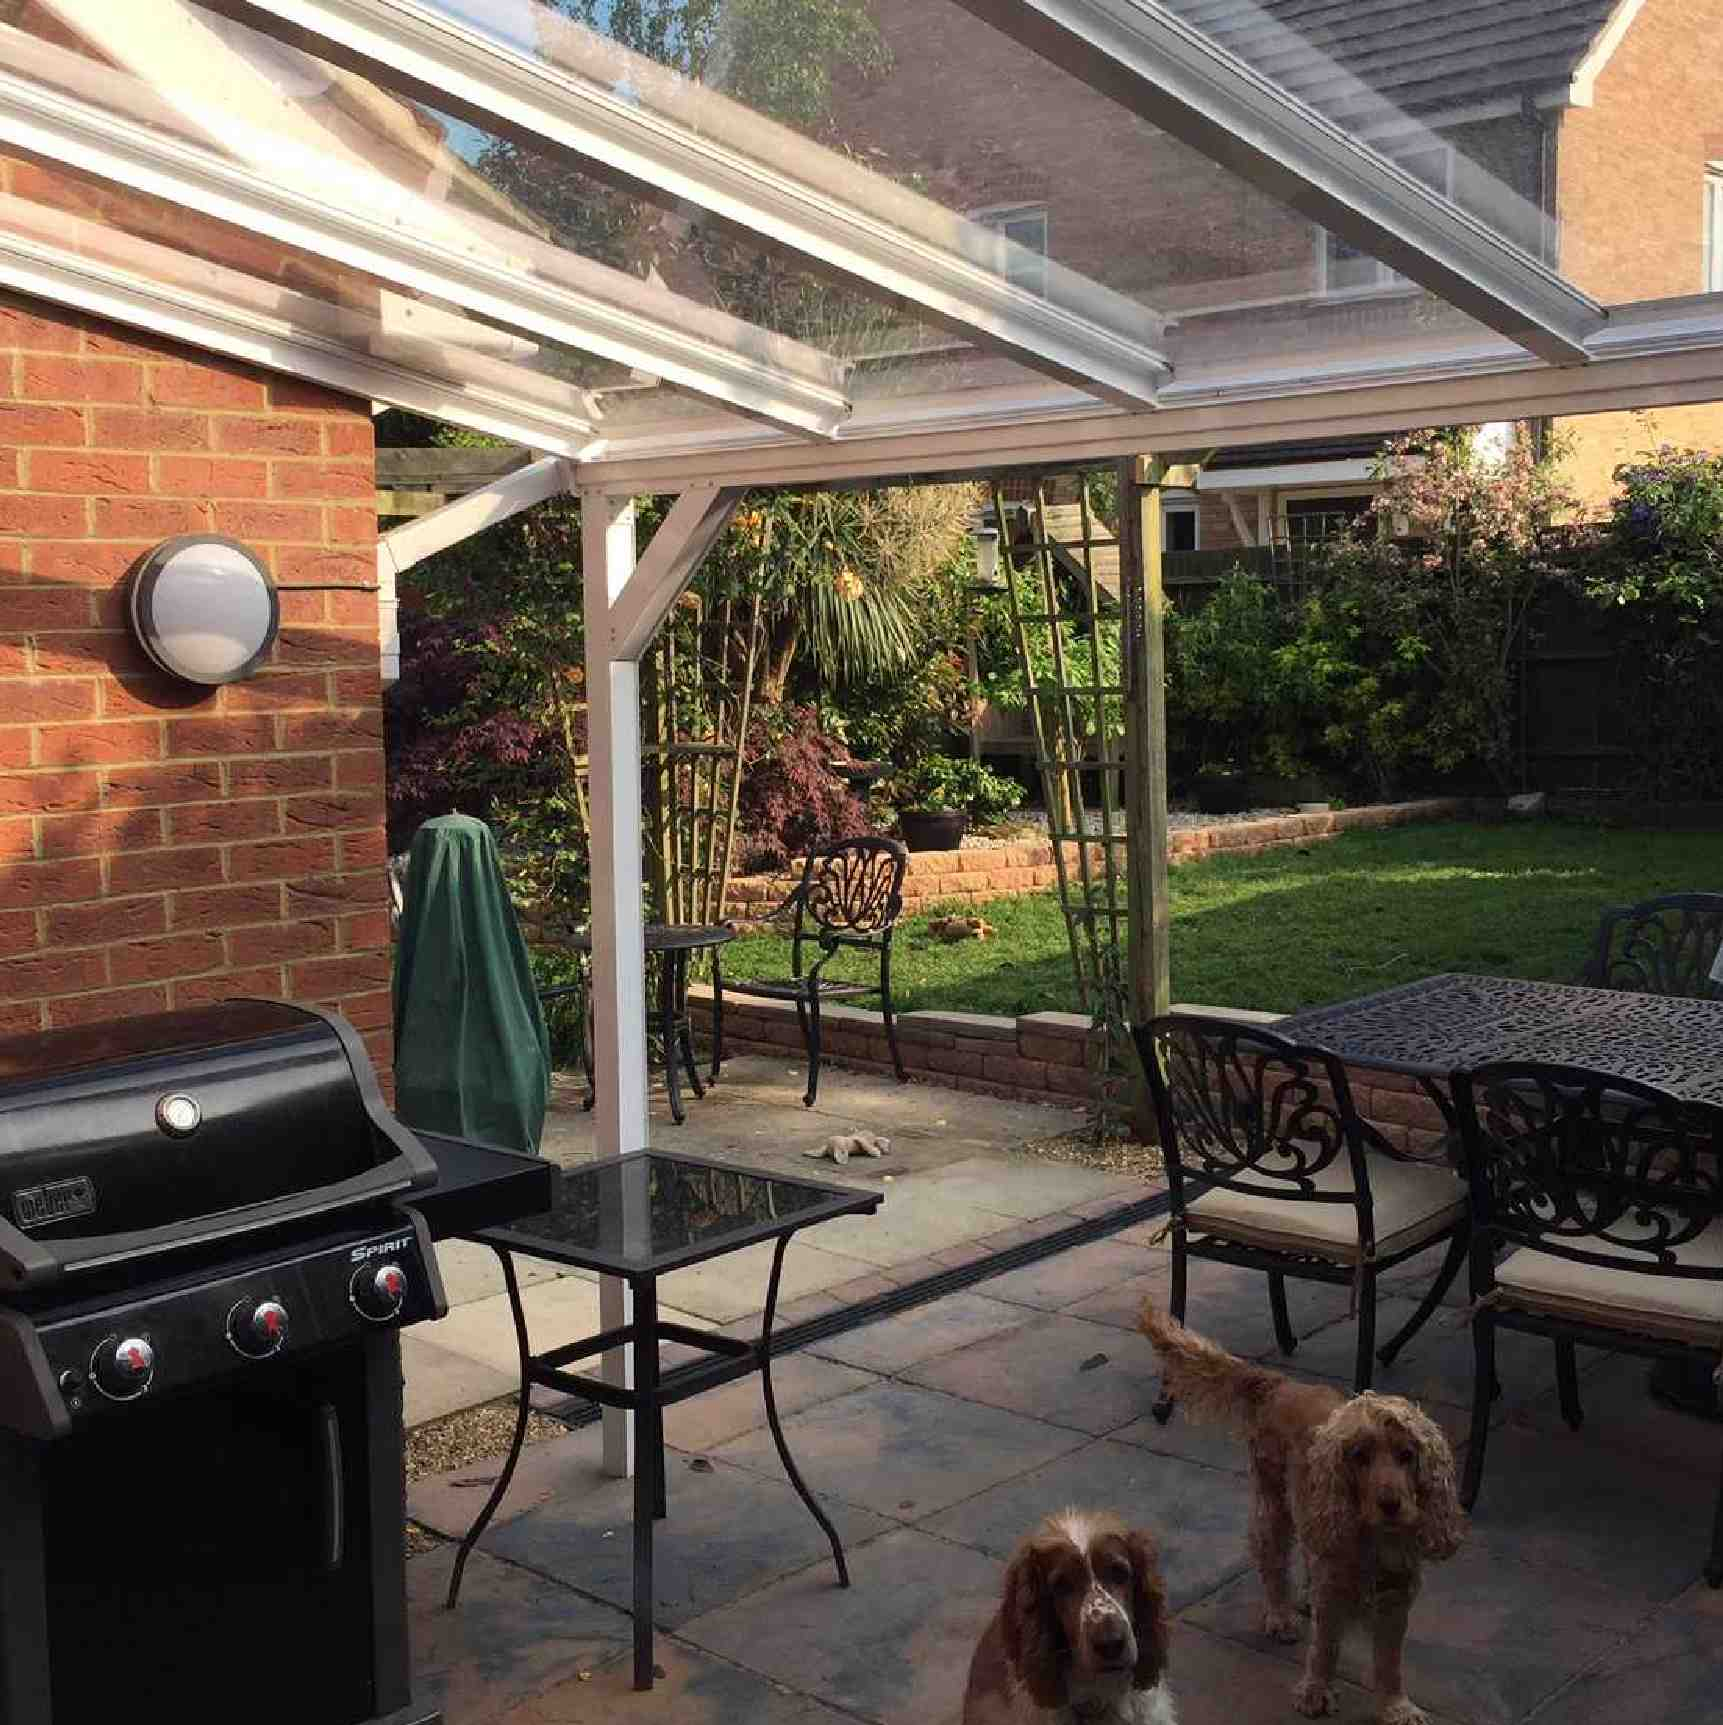 Omega Verandah with 16mm Polycarbonate Glazing - 11.4m (W) x 3.5m (P), (5) Supporting Posts